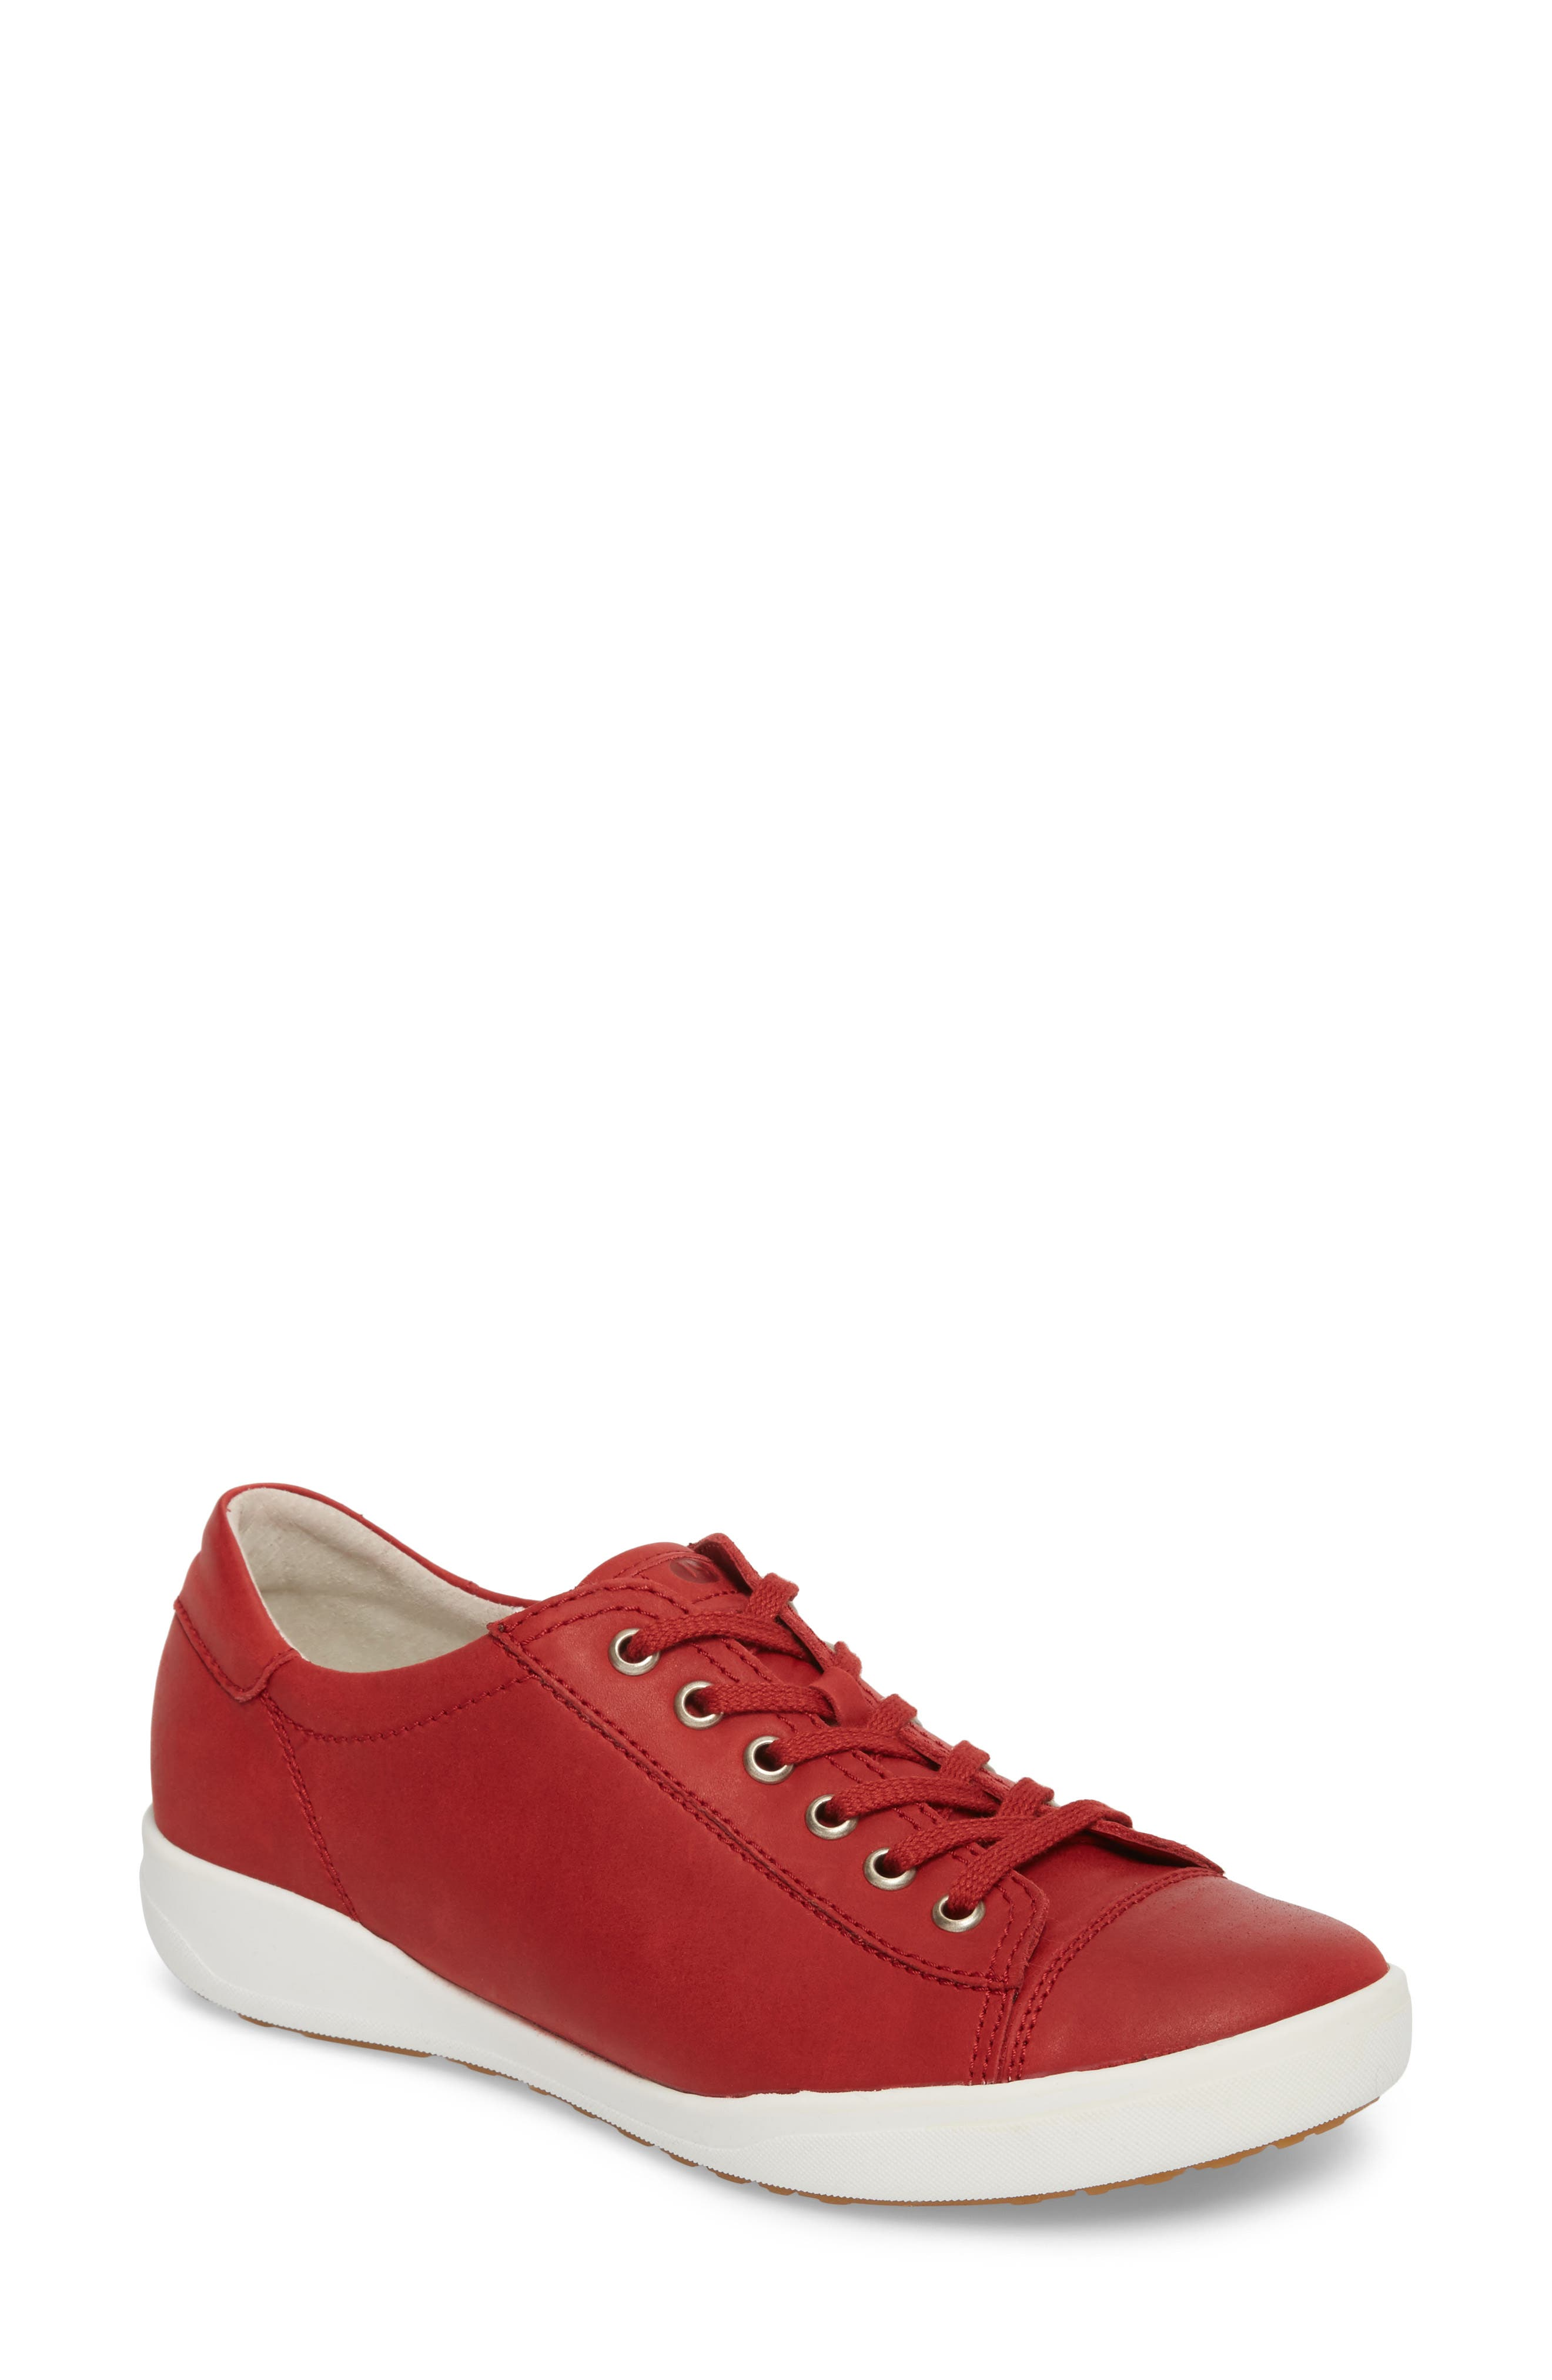 Sina 11 Sneaker,                         Main,                         color, RED LEATHER 2